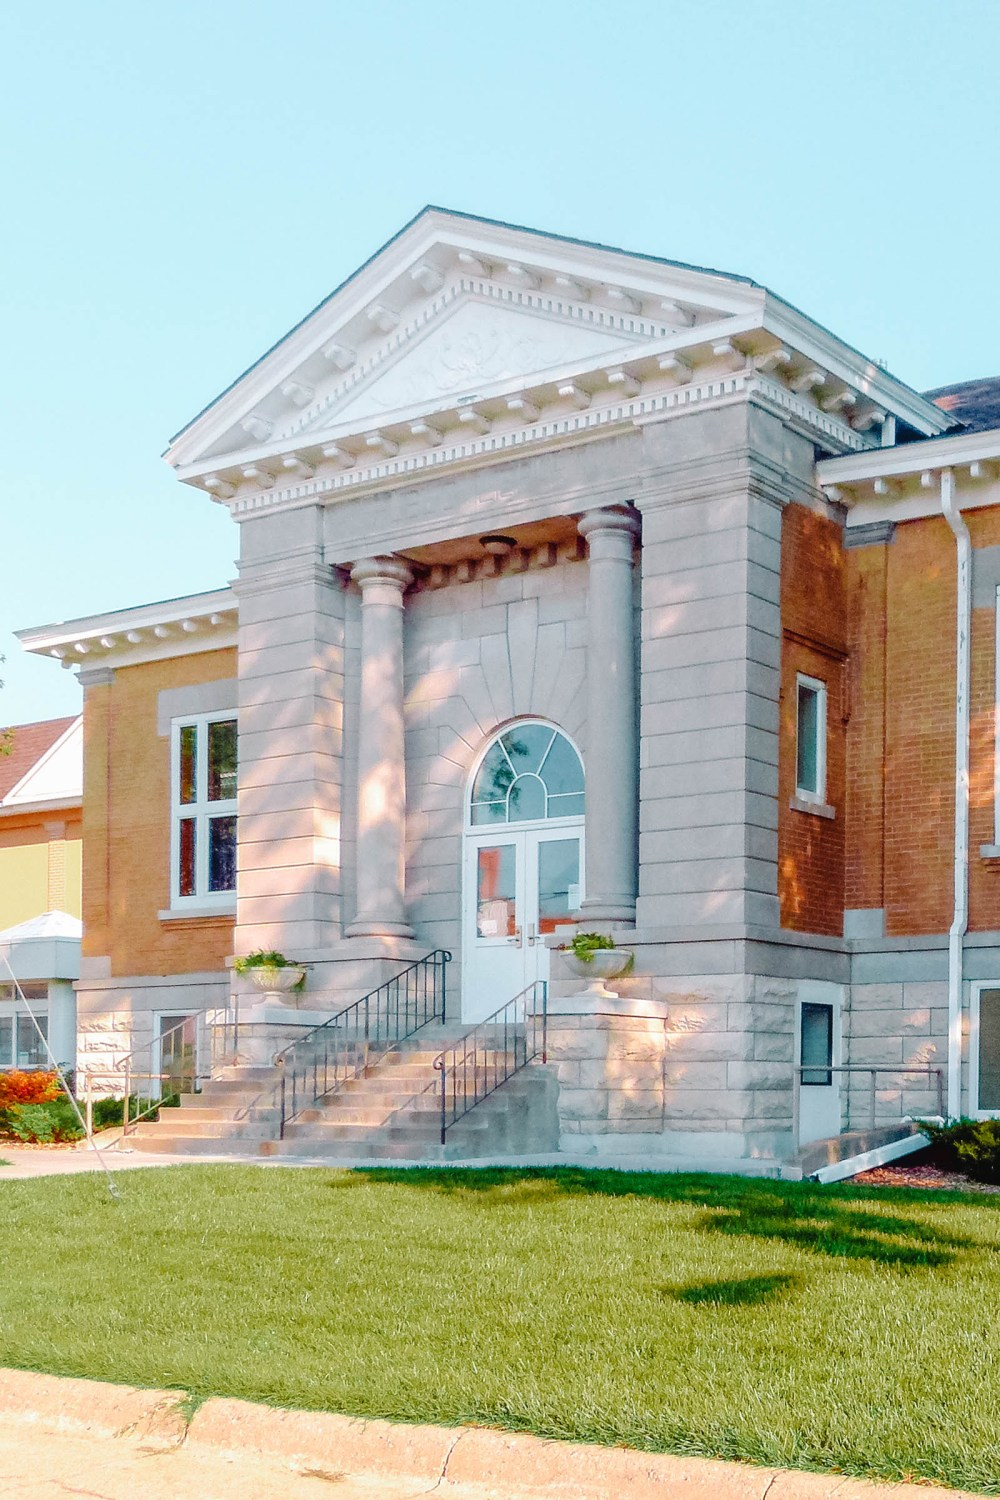 Best Things To Do In Kansas (15)